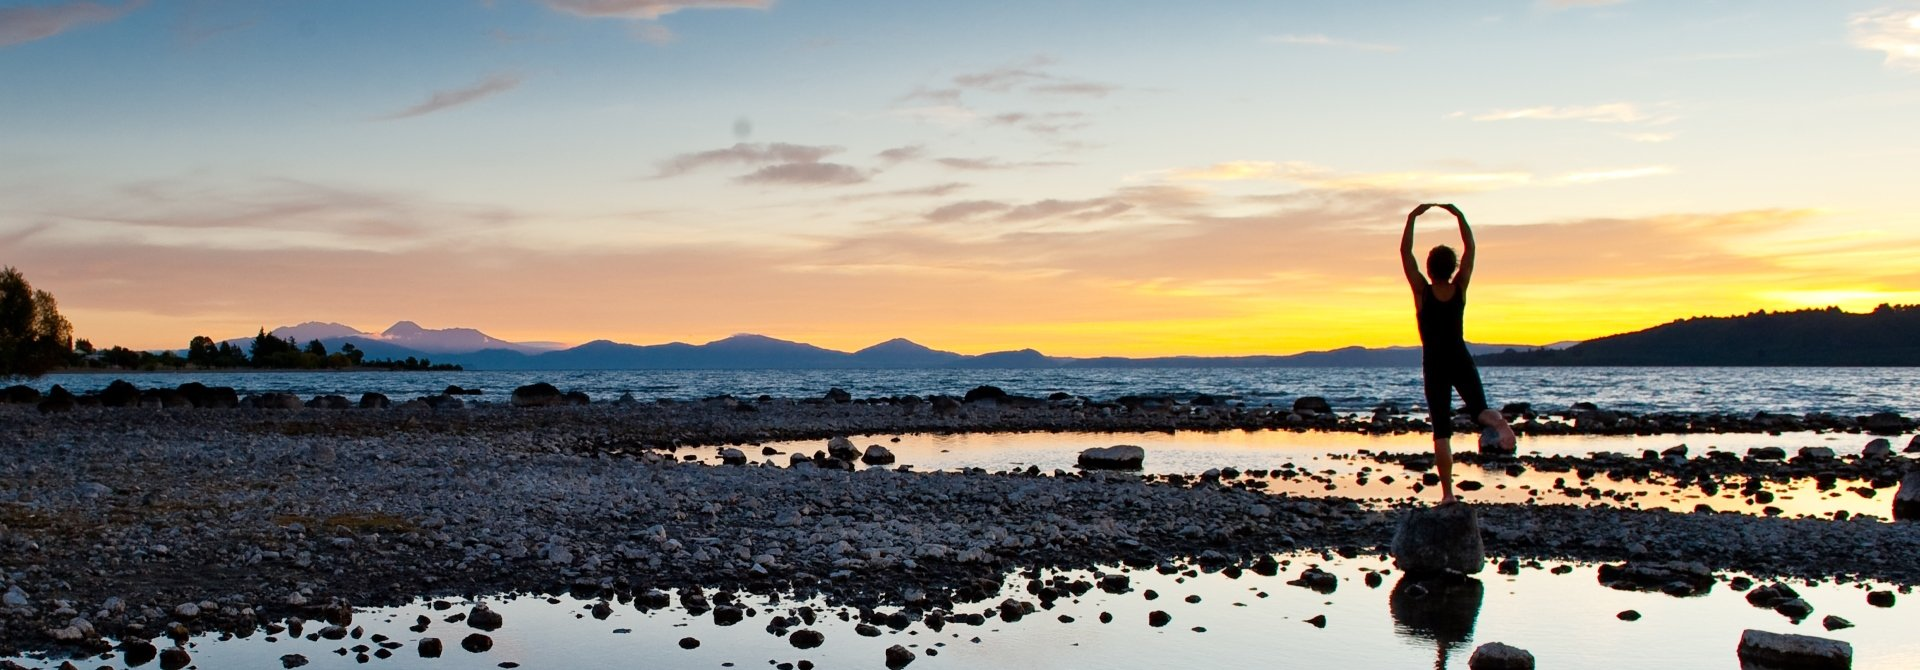 Taupo-Scenery-Sunset.jpg